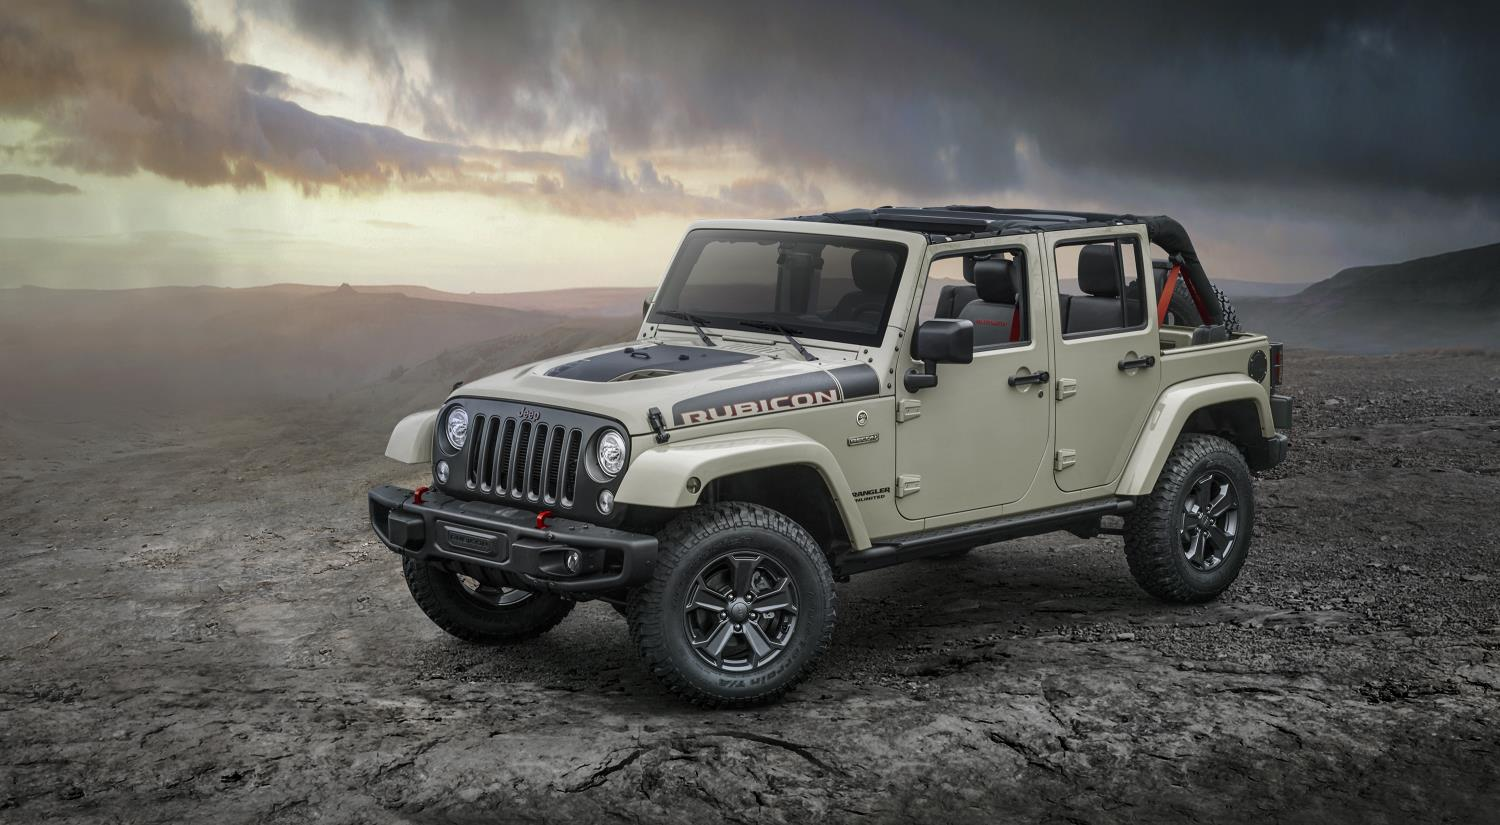 2017 jeep wrangler rubicon recon isn t afraid to play in the mud autoevolution. Black Bedroom Furniture Sets. Home Design Ideas